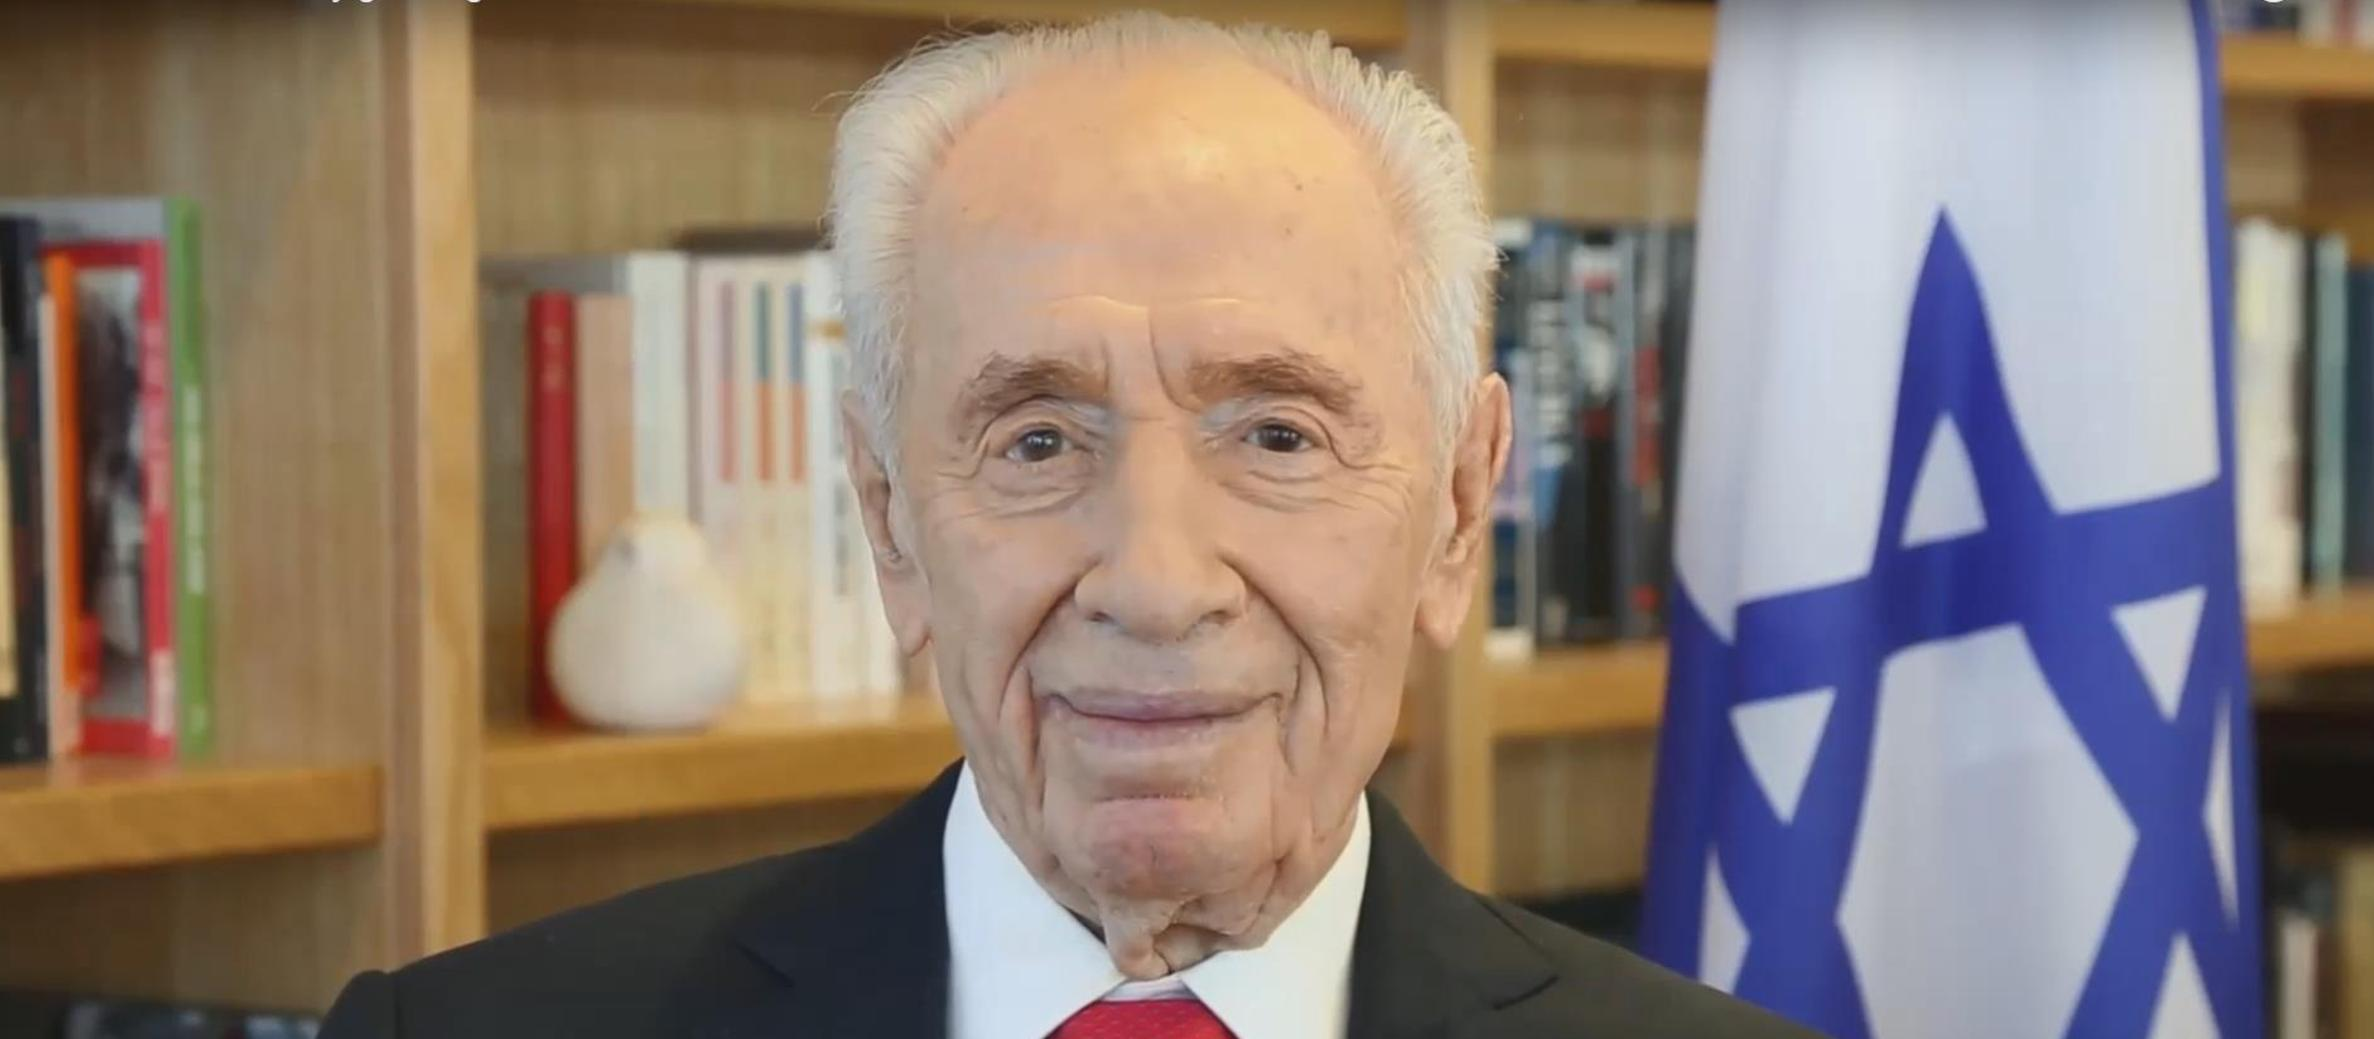 Former Israeli President, Shimon Peres, remains in serious condition following stroke